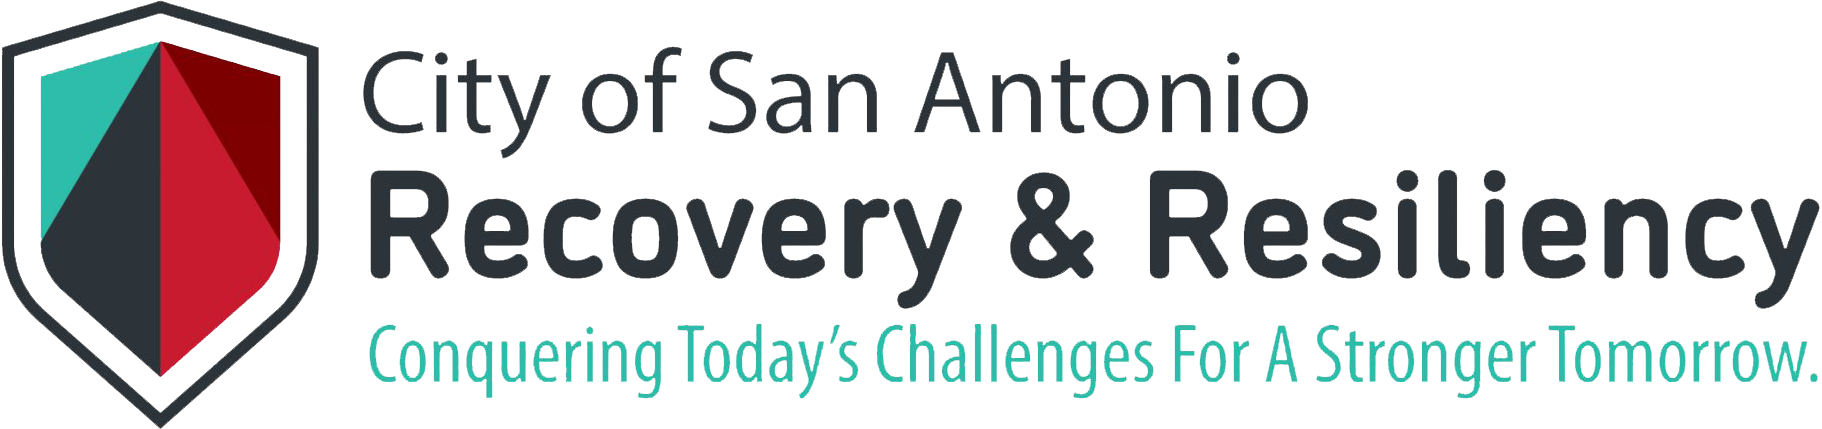 City of San Antonio Recovery & Resiliency